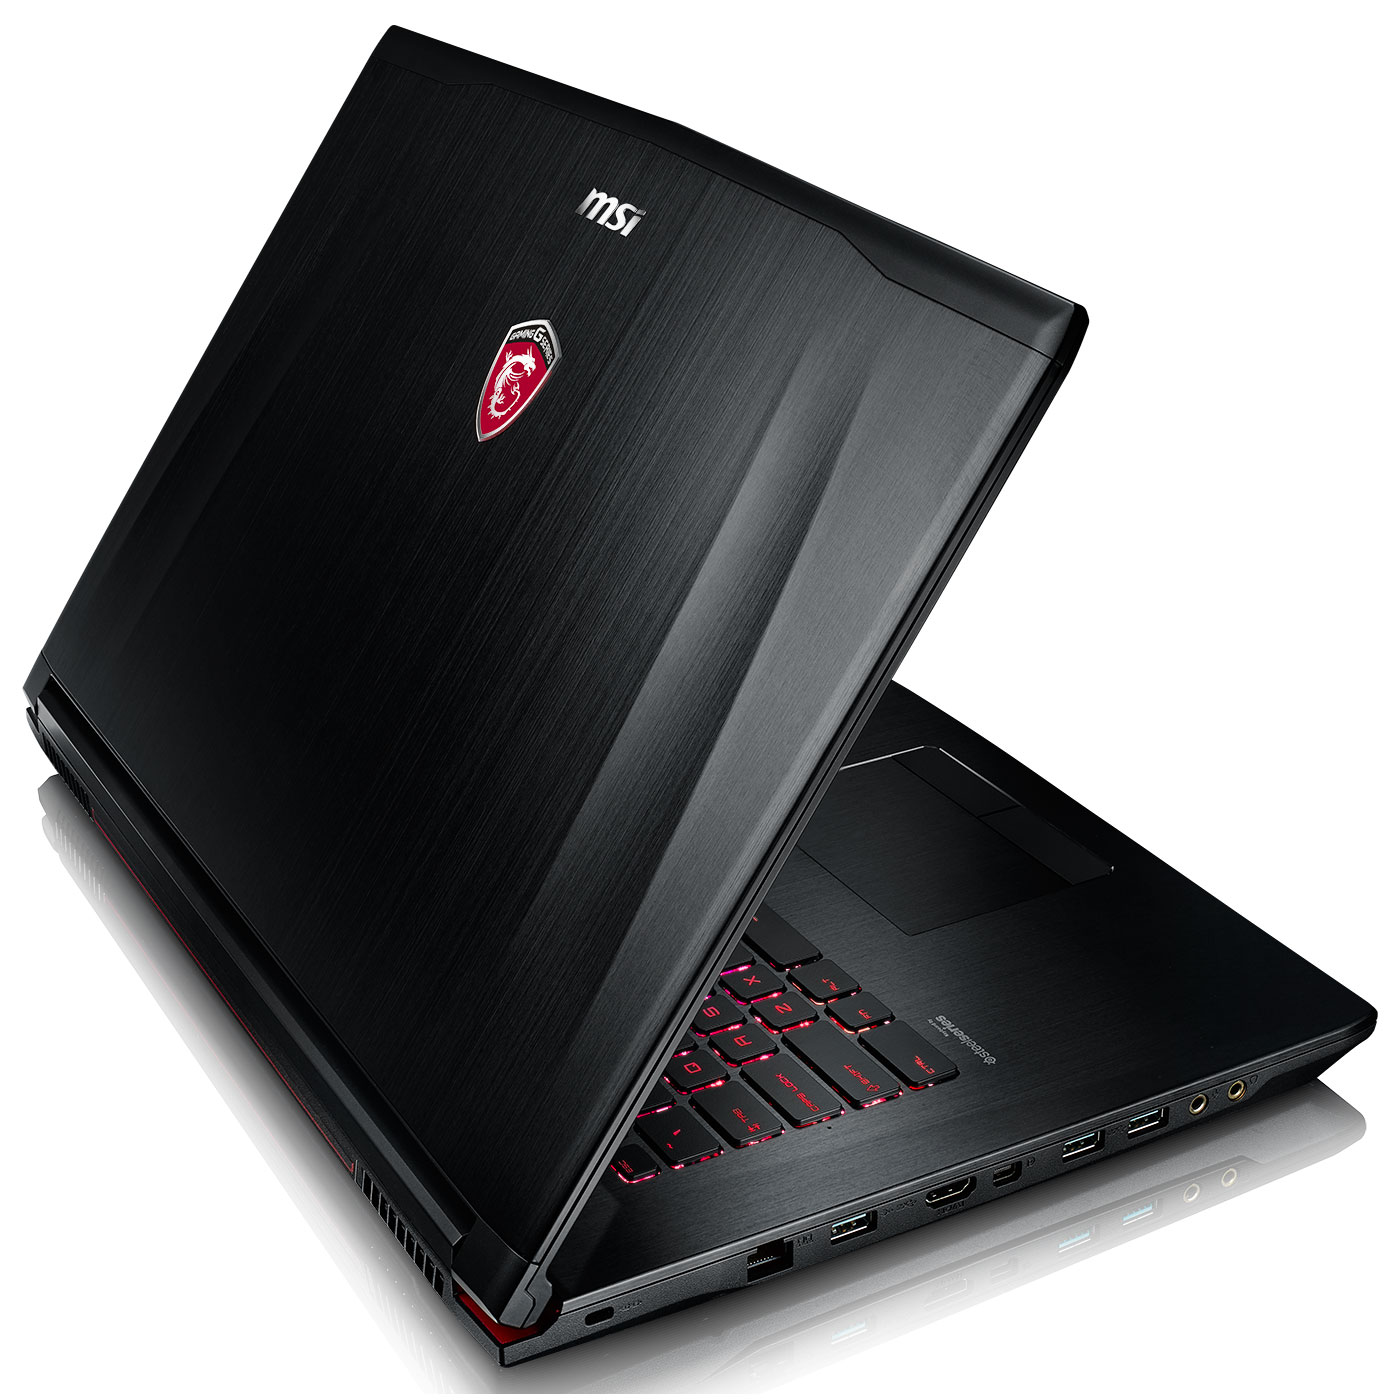 msi ge72 2qe 022xfr apache pc portable msi sur ldlc. Black Bedroom Furniture Sets. Home Design Ideas